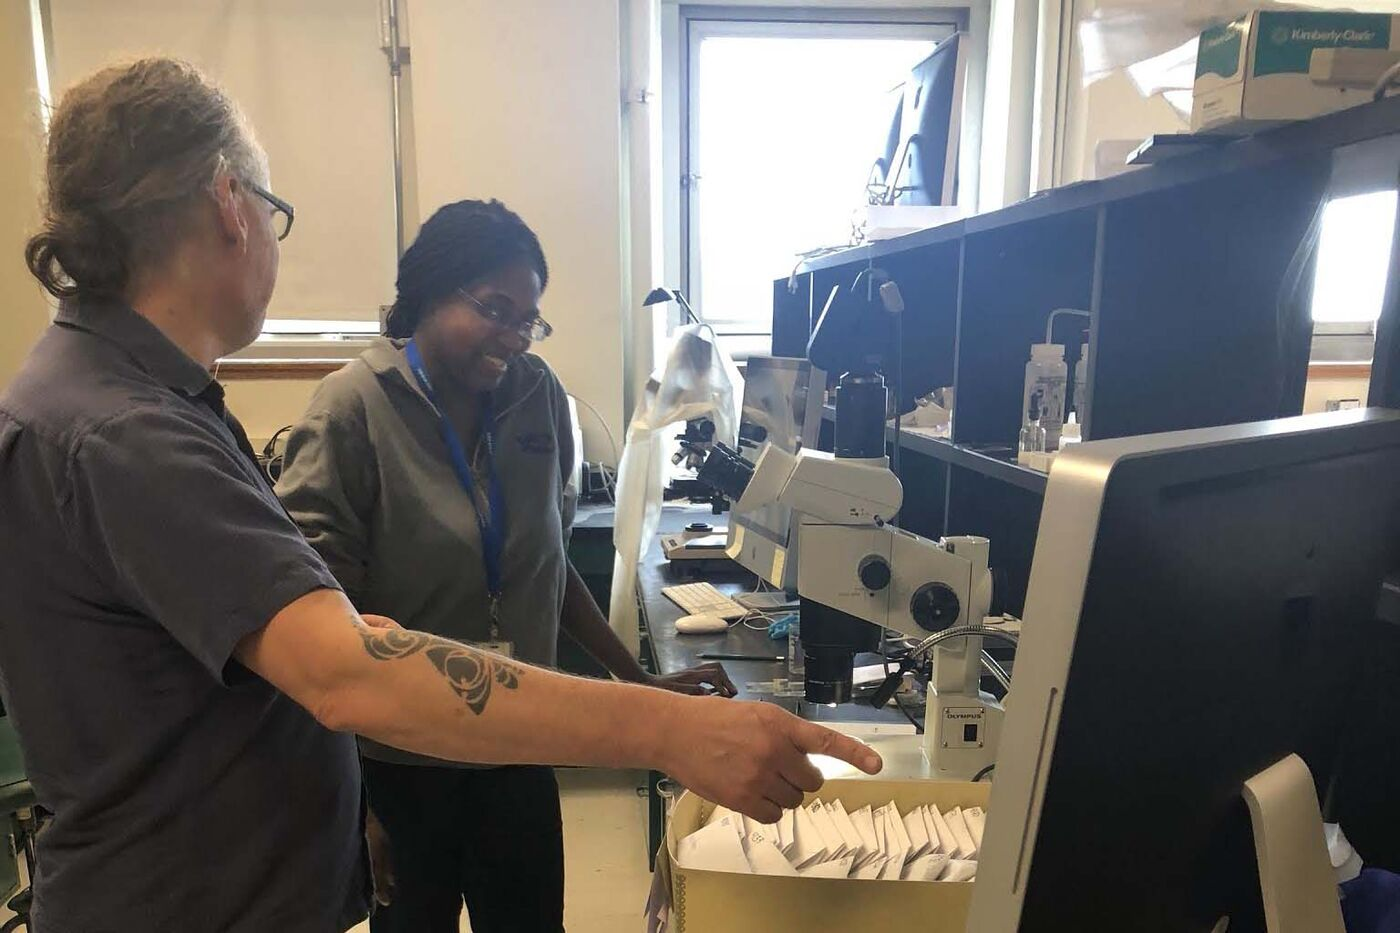 Two researchers reviewing collections materials in a lab.